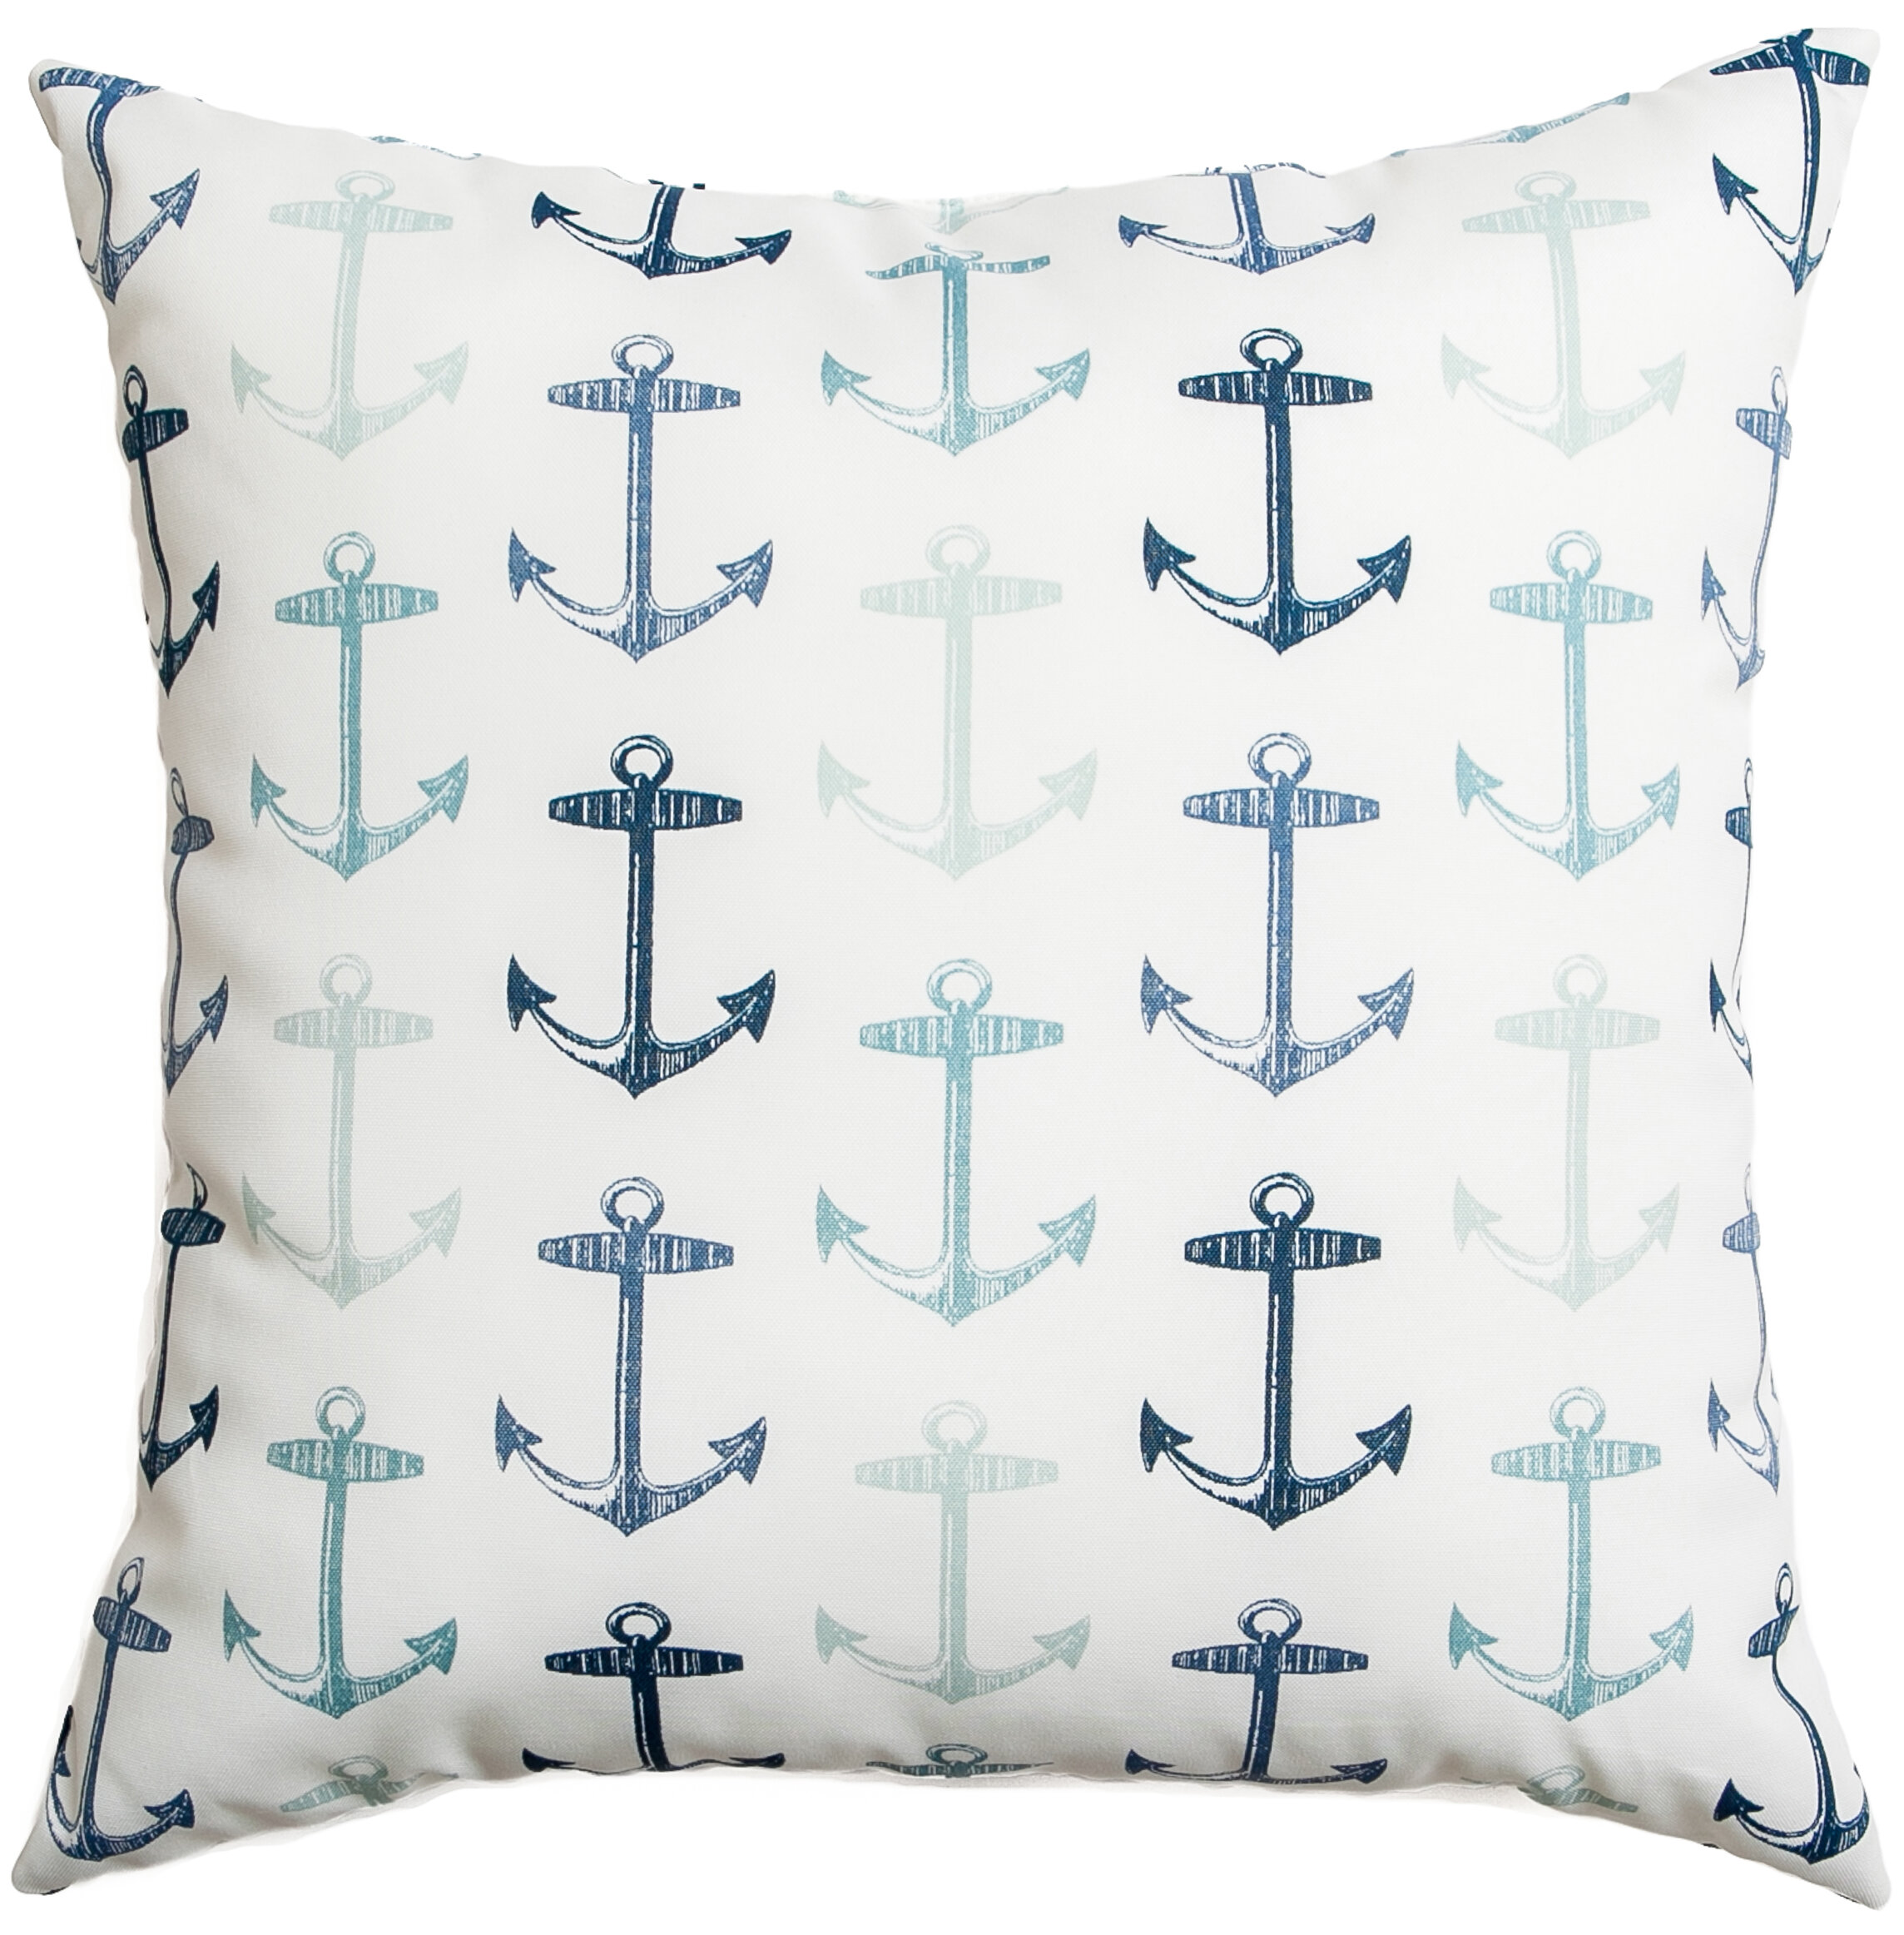 top awesome with buy home cotton double of pillows best covers selling pillow bedsheet story